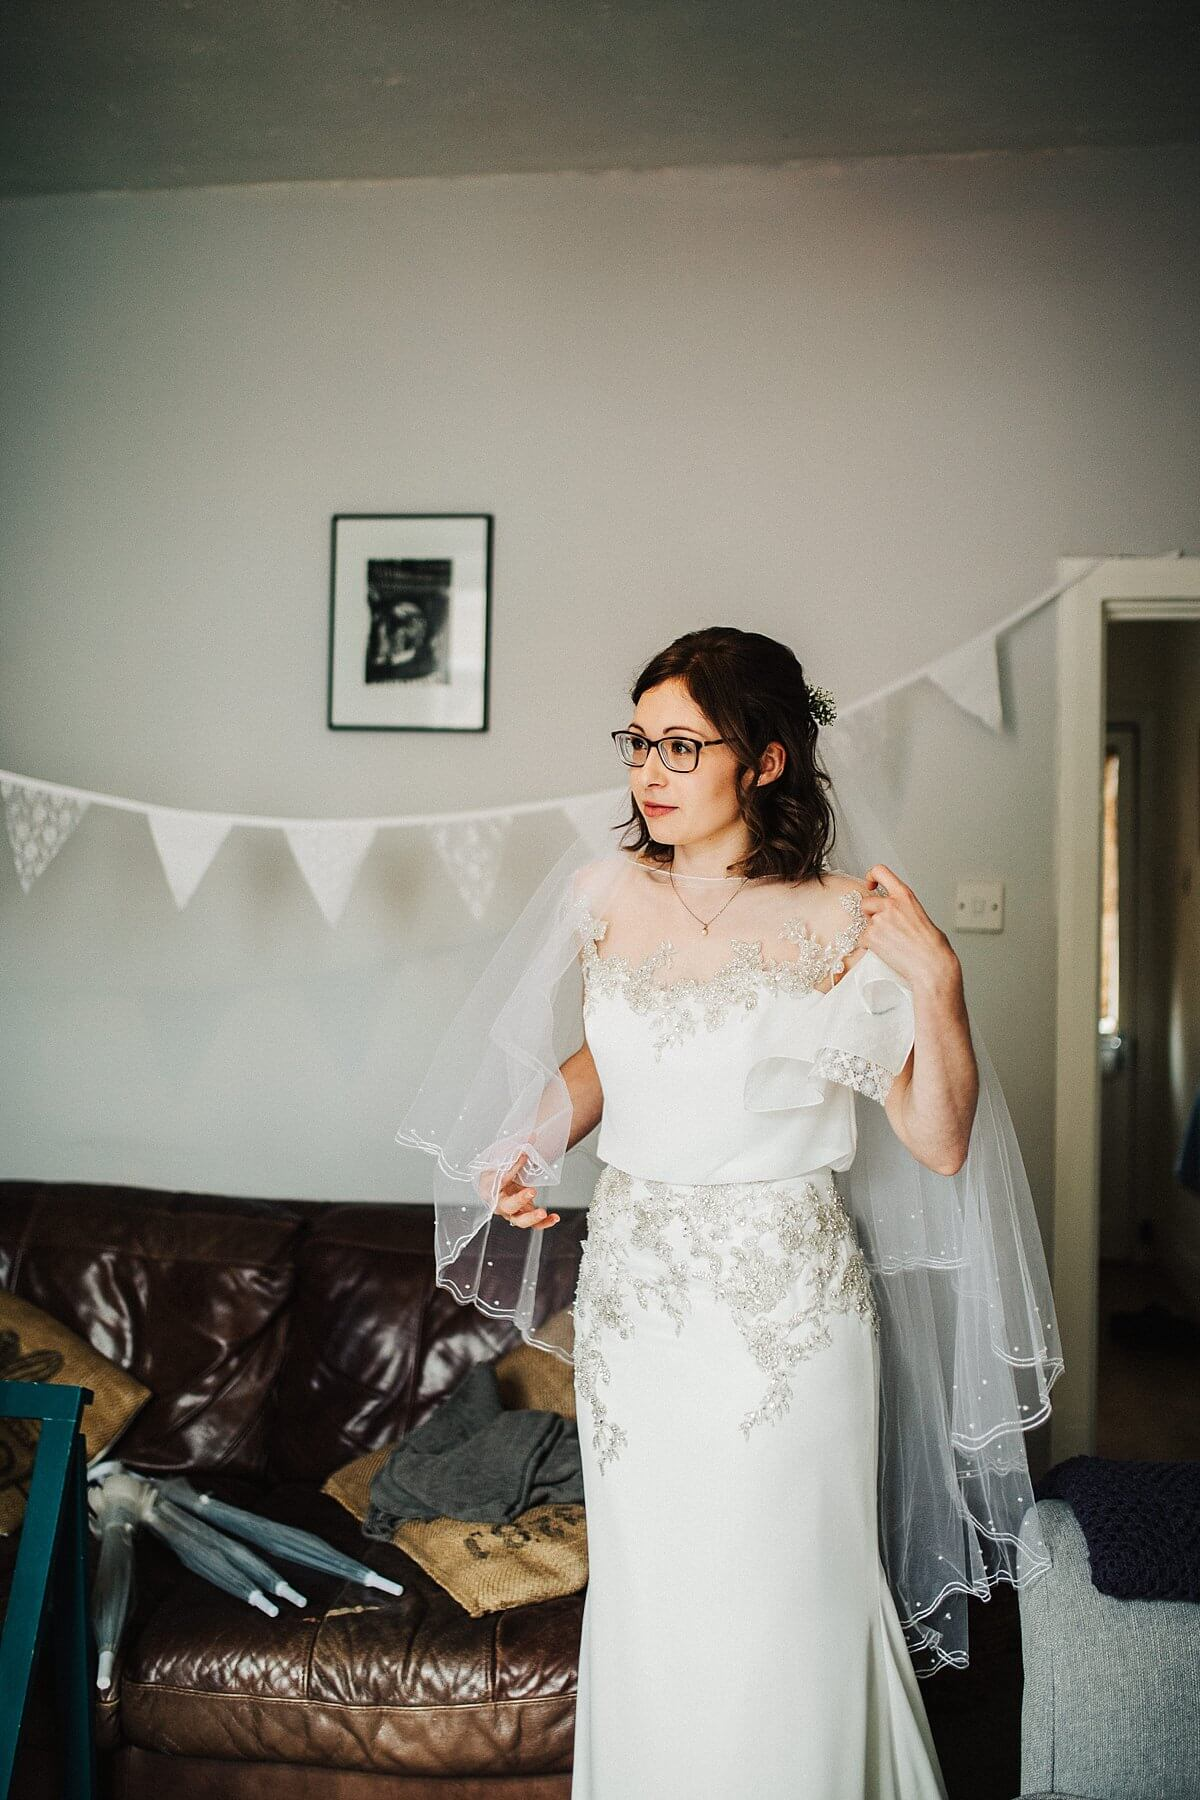 The bride in her Enzoani dress and veil